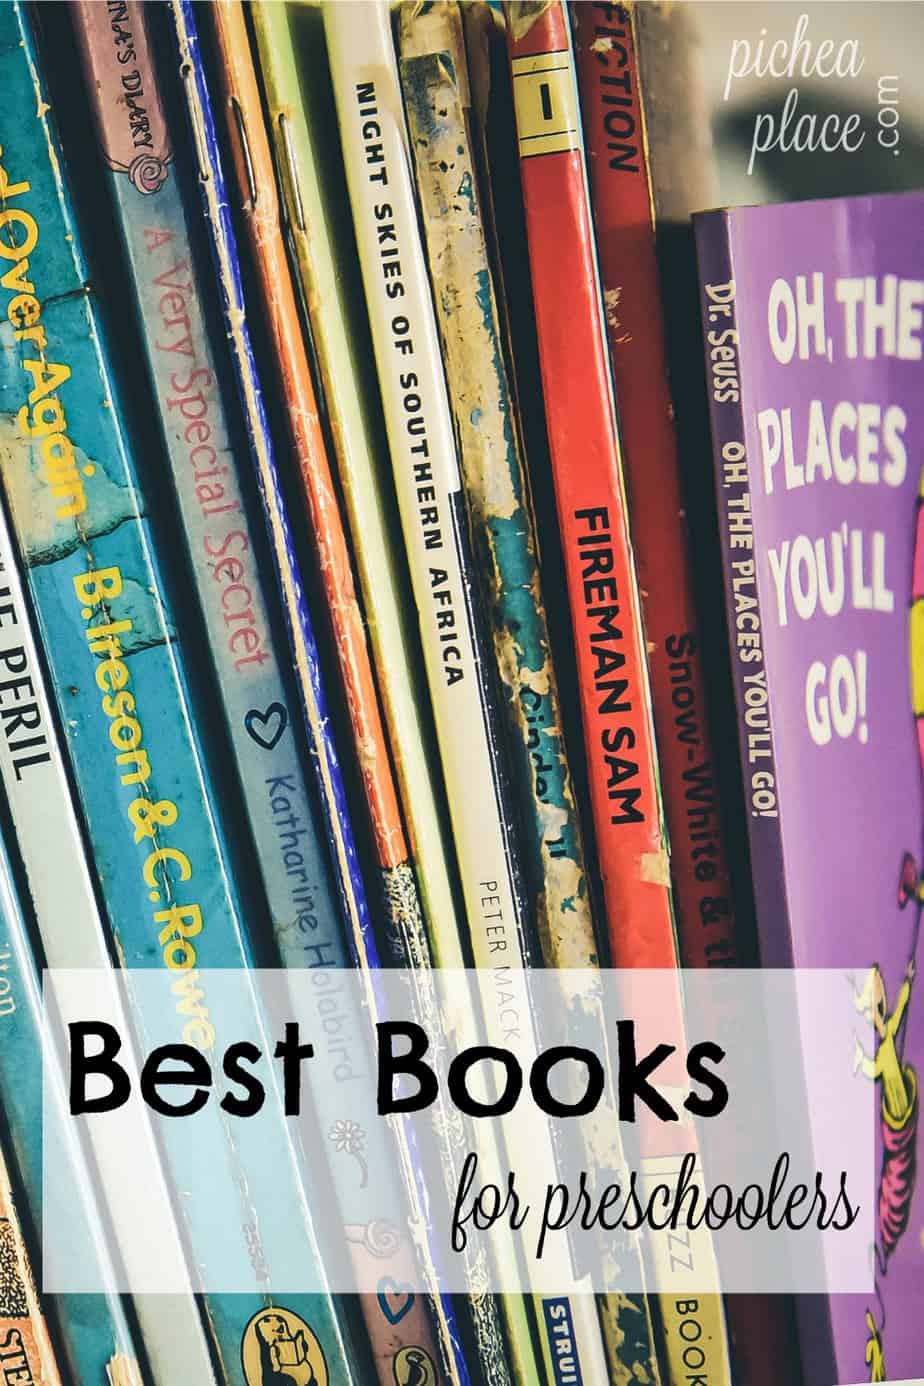 best-books-for-preschoolers-pin